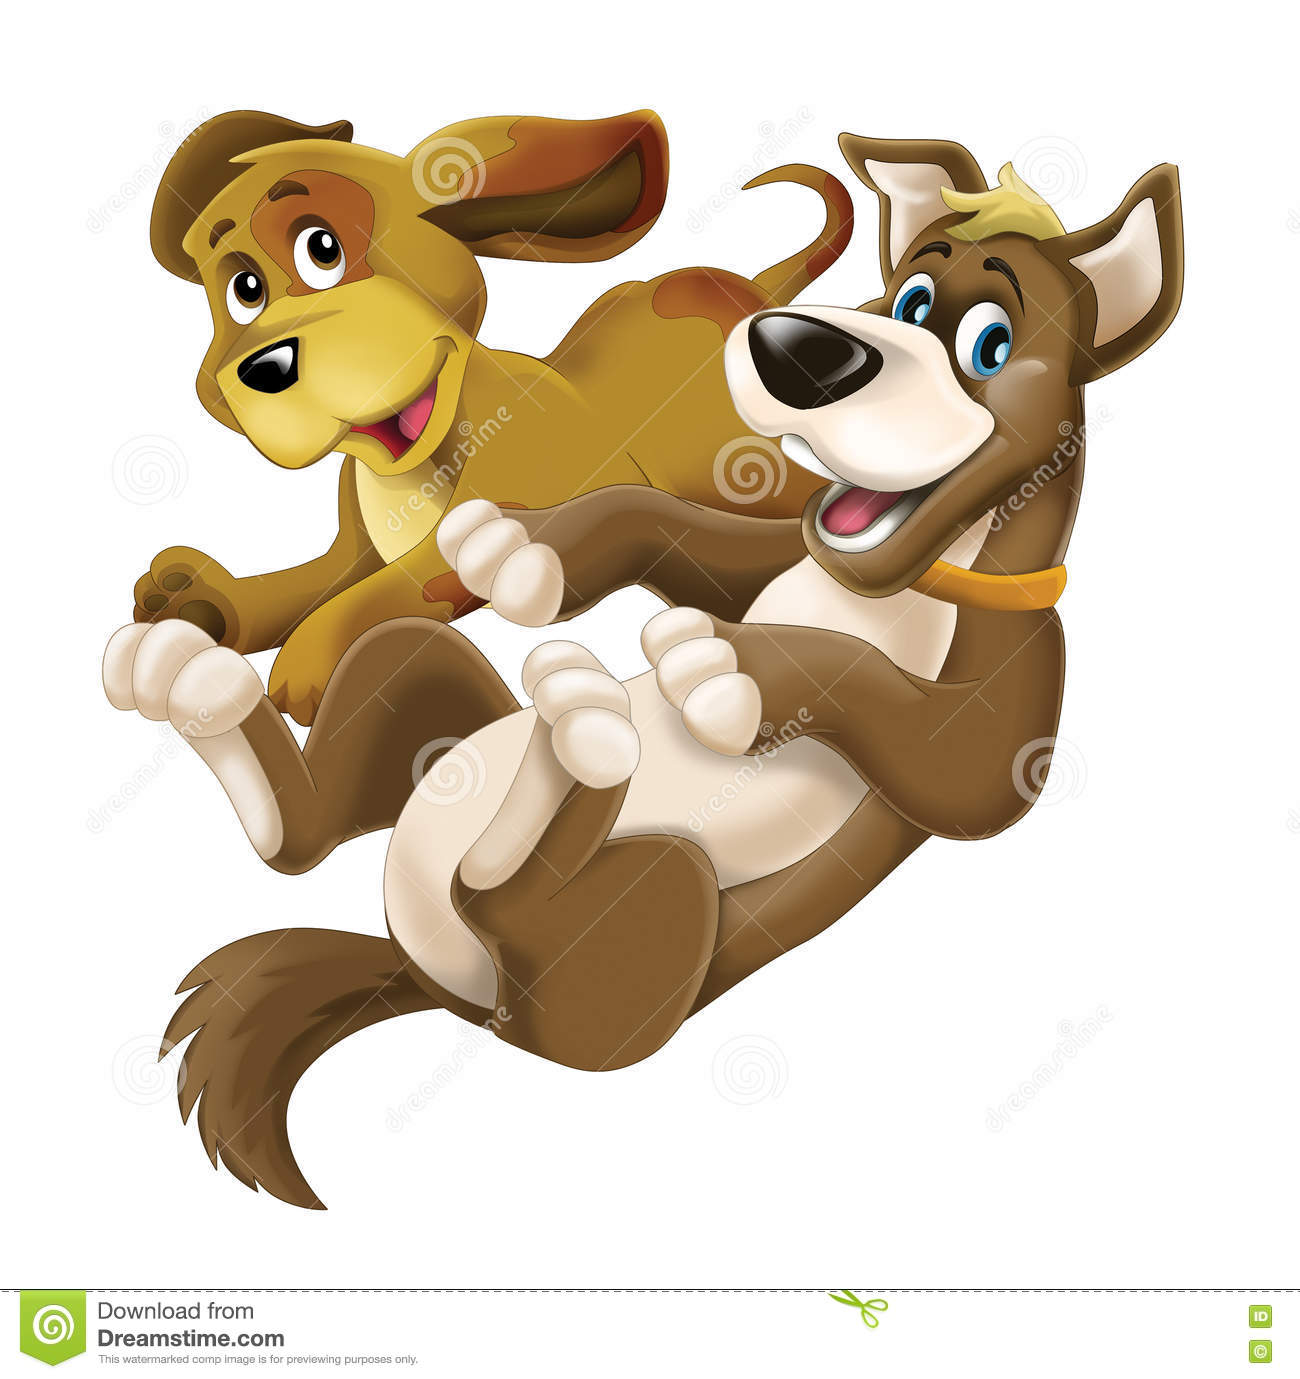 Cartoon Happy Dog Farm Animals Two Friend Dogs Isolated Stock Illustration Illustration Of Beautiful Different 78799650